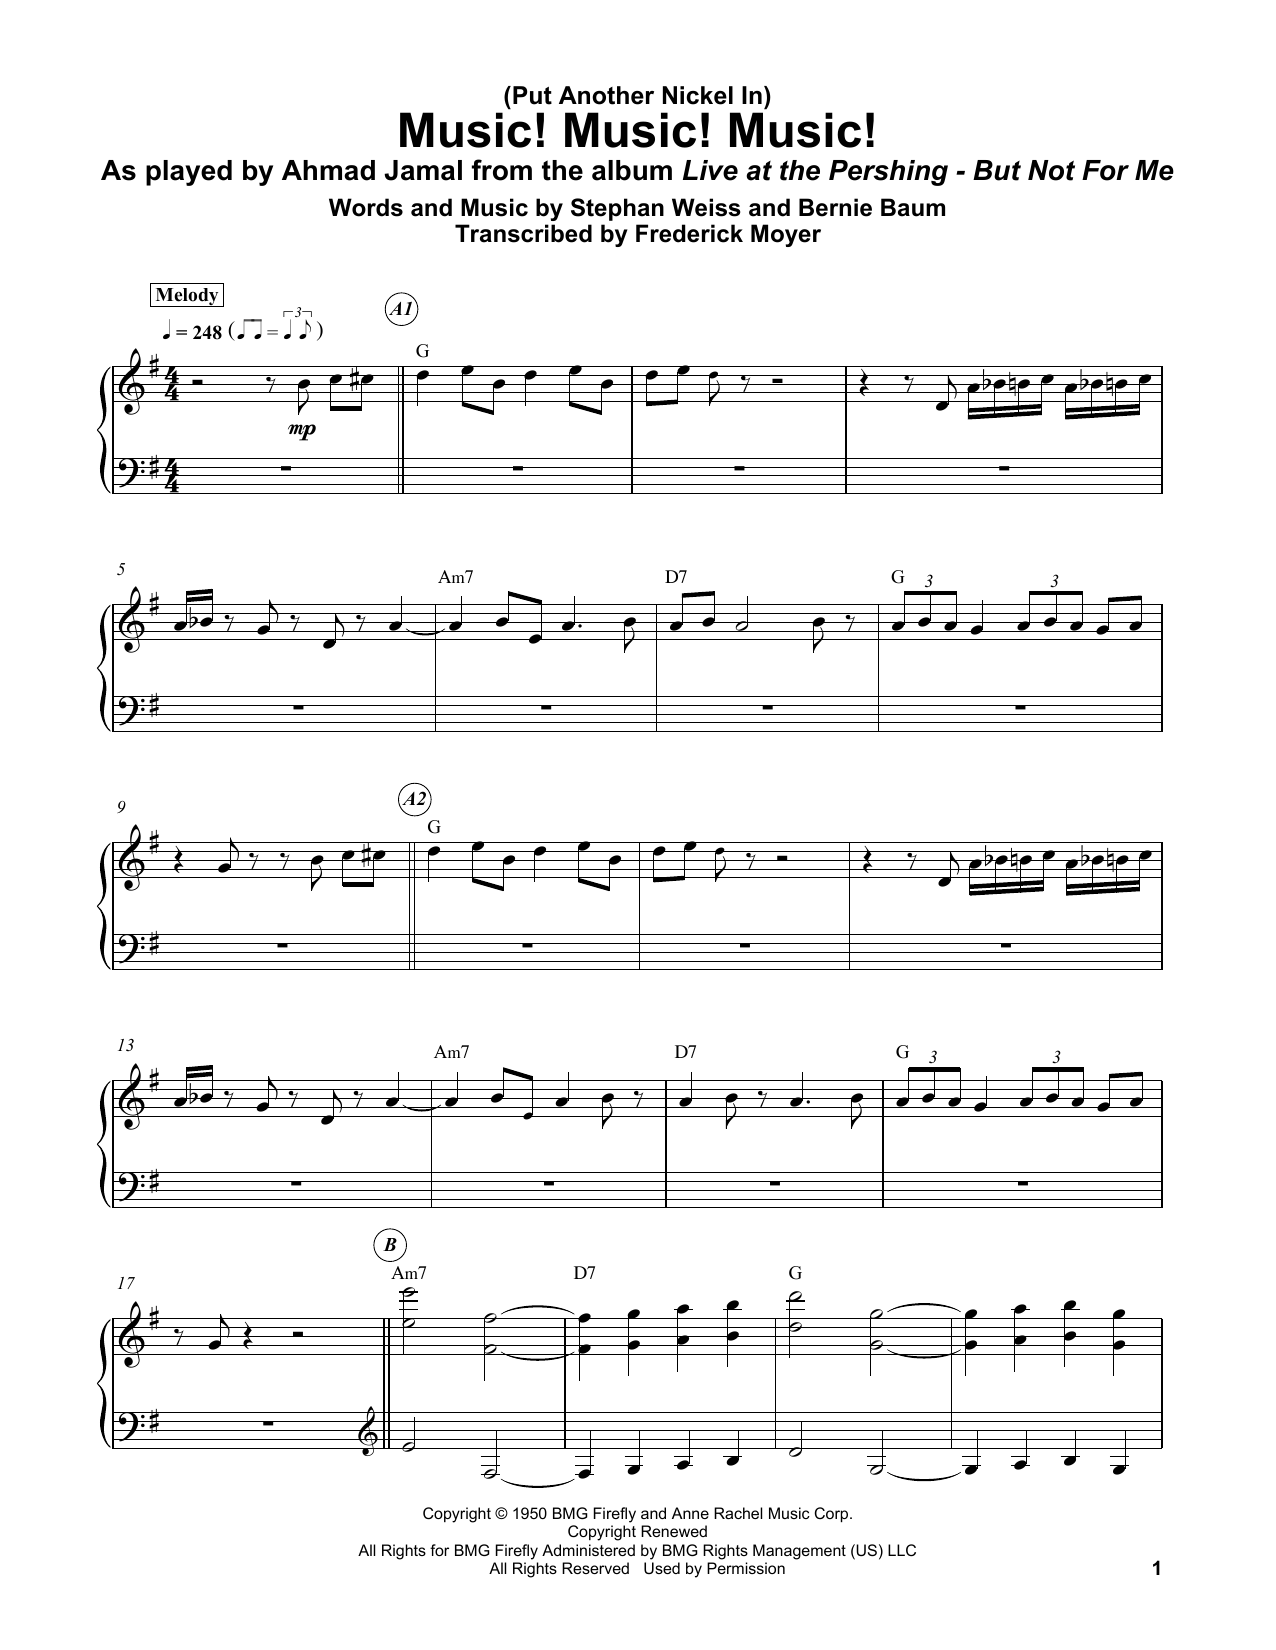 (Put Another Nickel In) Music! Music! Music! (Piano Transcription)